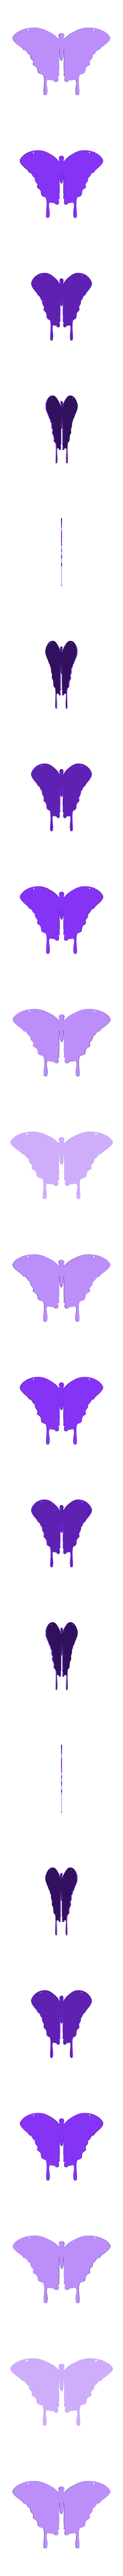 butterfly_center.stl Download free STL file Butterfly Necklace • 3D printable model, LordTailor